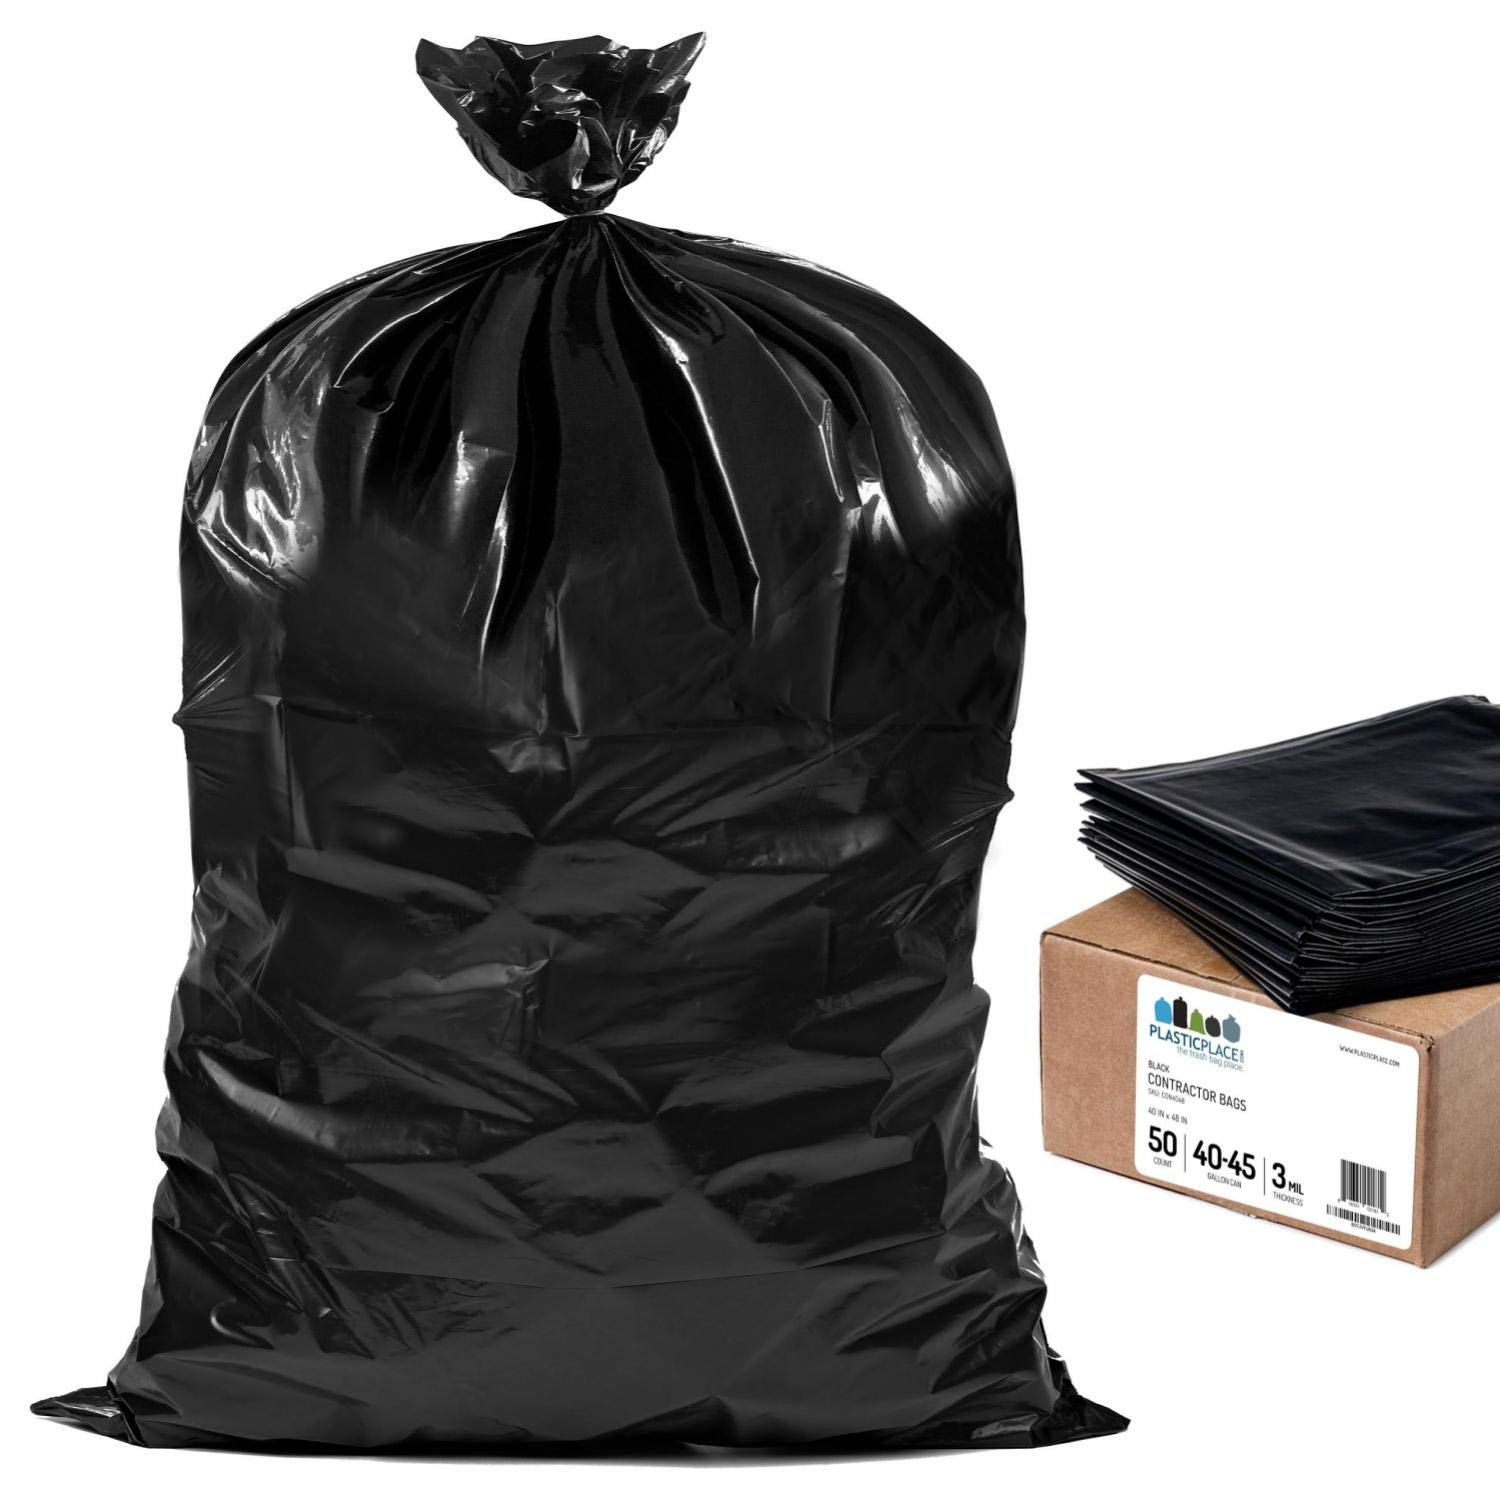 Plasticplace Contractor Trash Bags 40-45 Gallon │ 3.0 Mil │ Black Heavy Duty Garbage Bag │ 40'' x 48'' (50 Count)